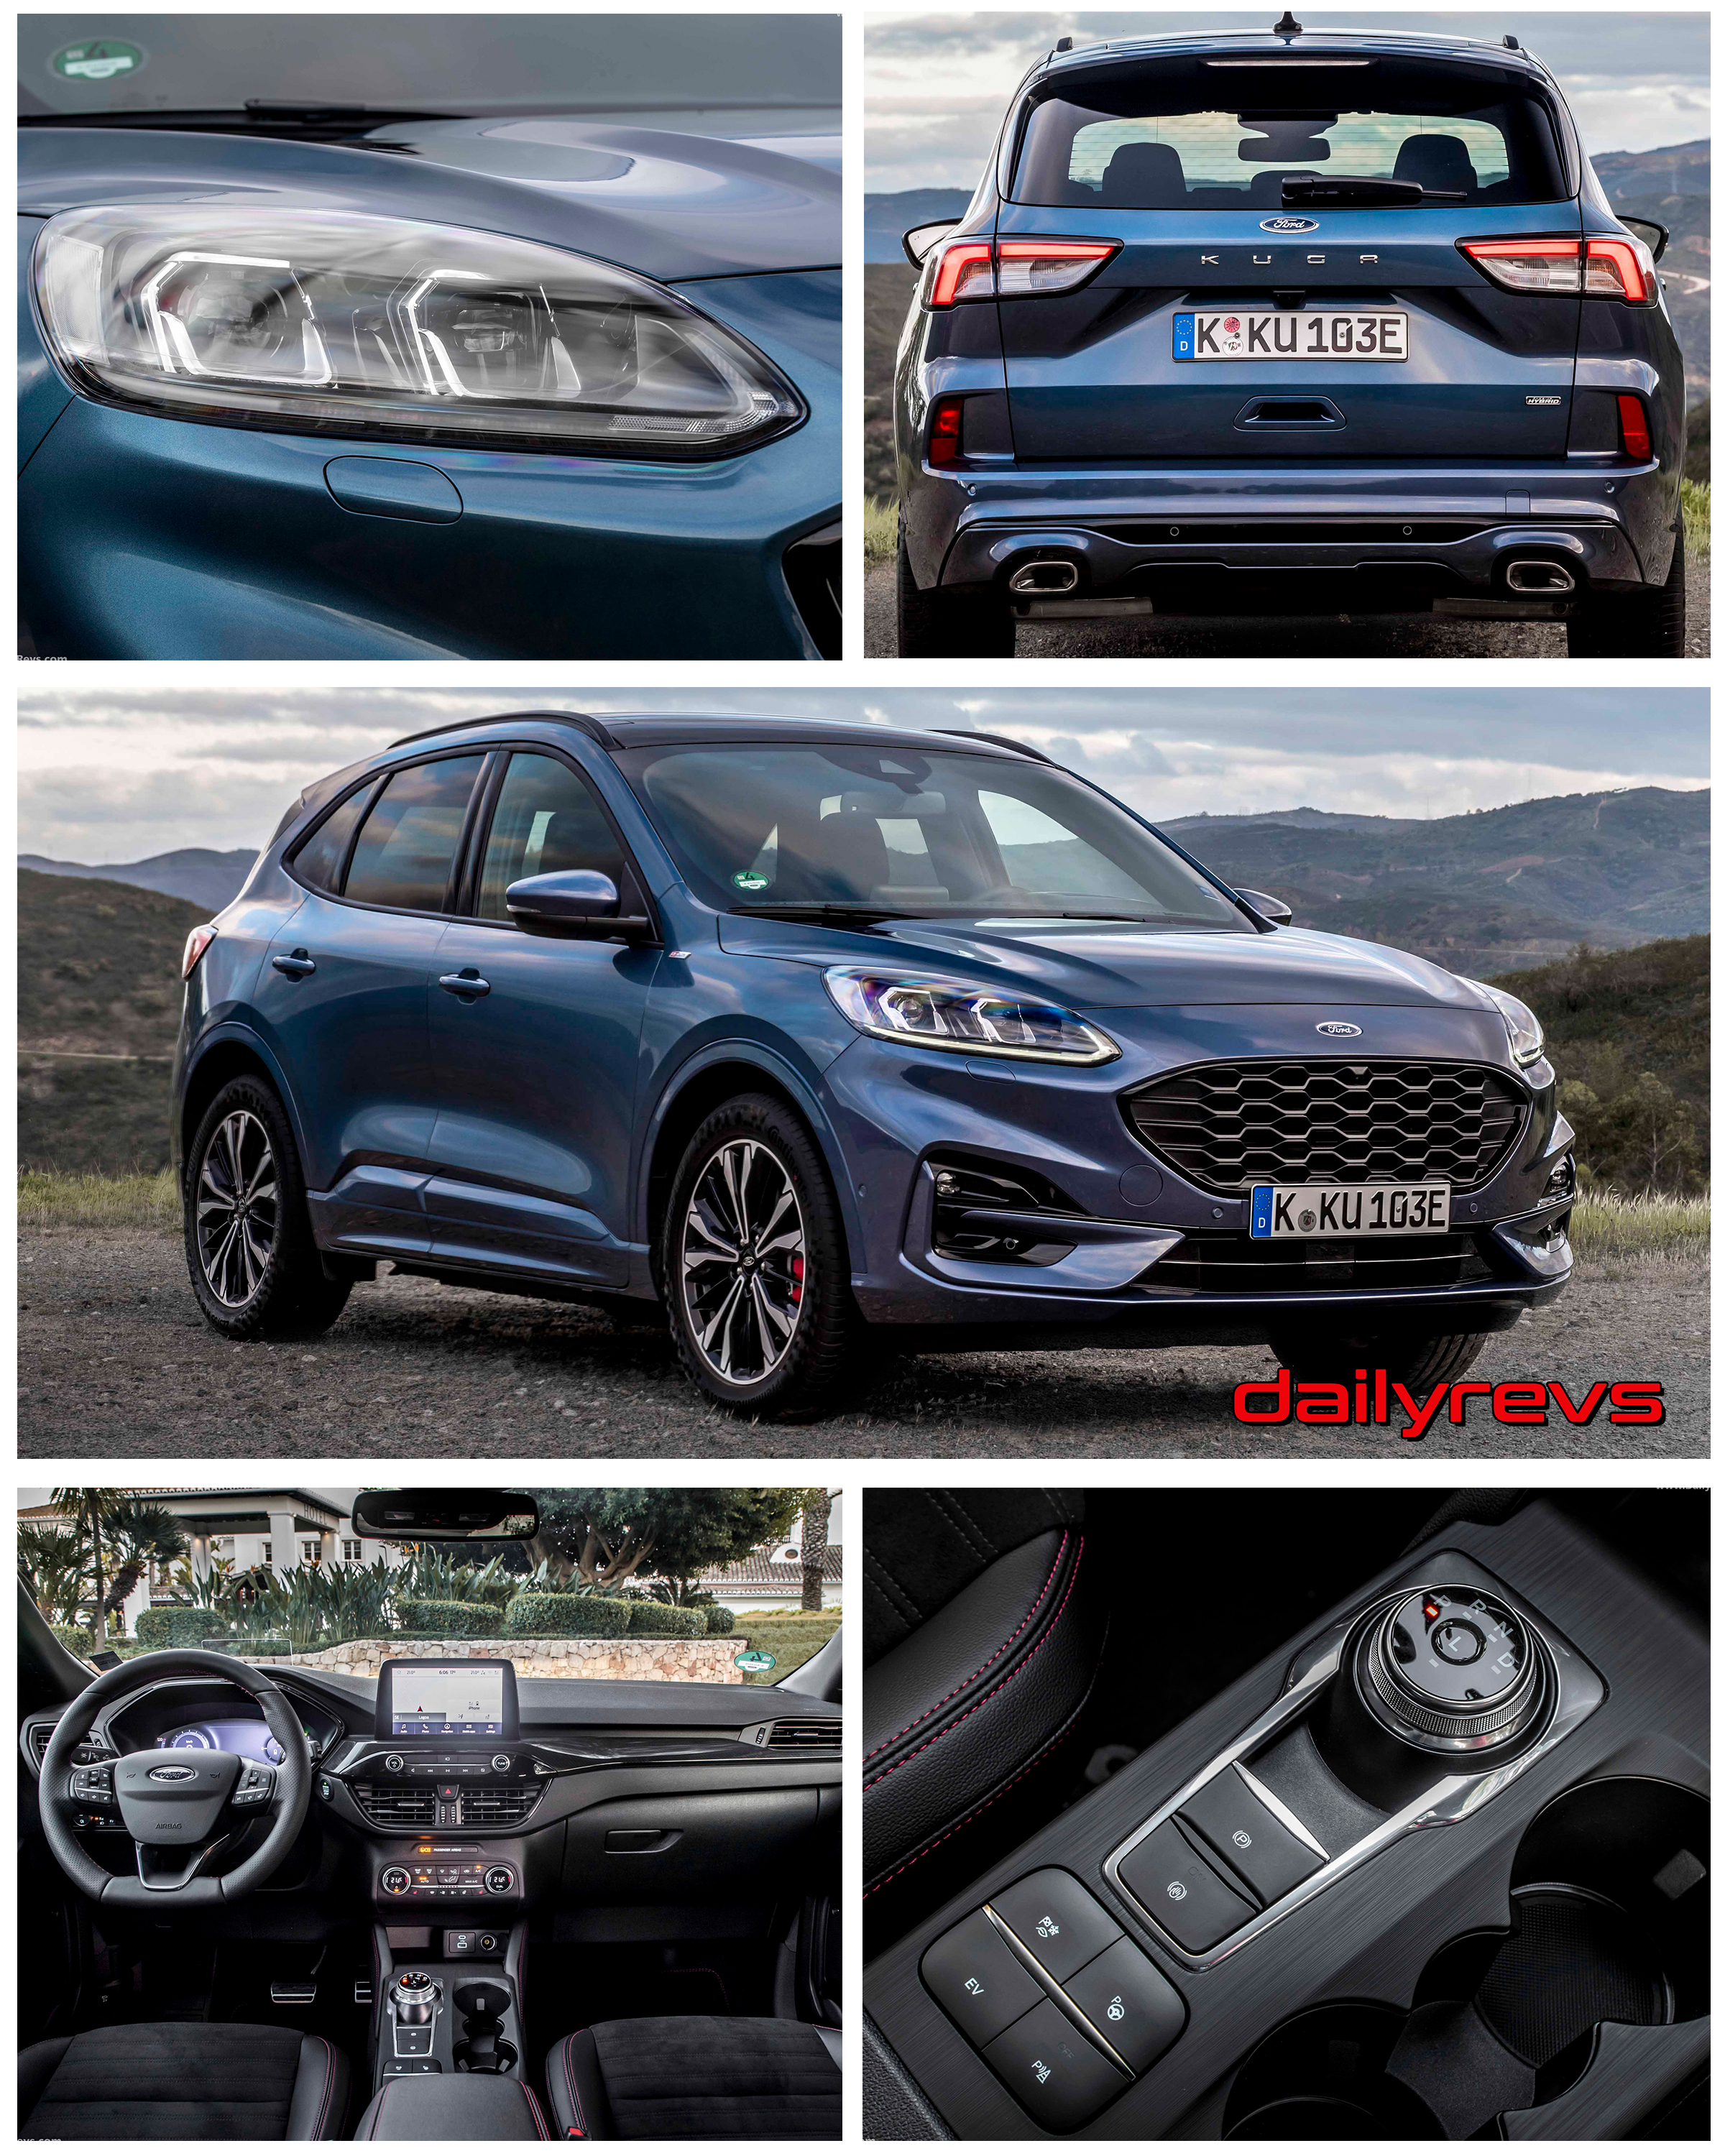 2020 Ford Kuga ST-Line PHEV - Dailyrevs